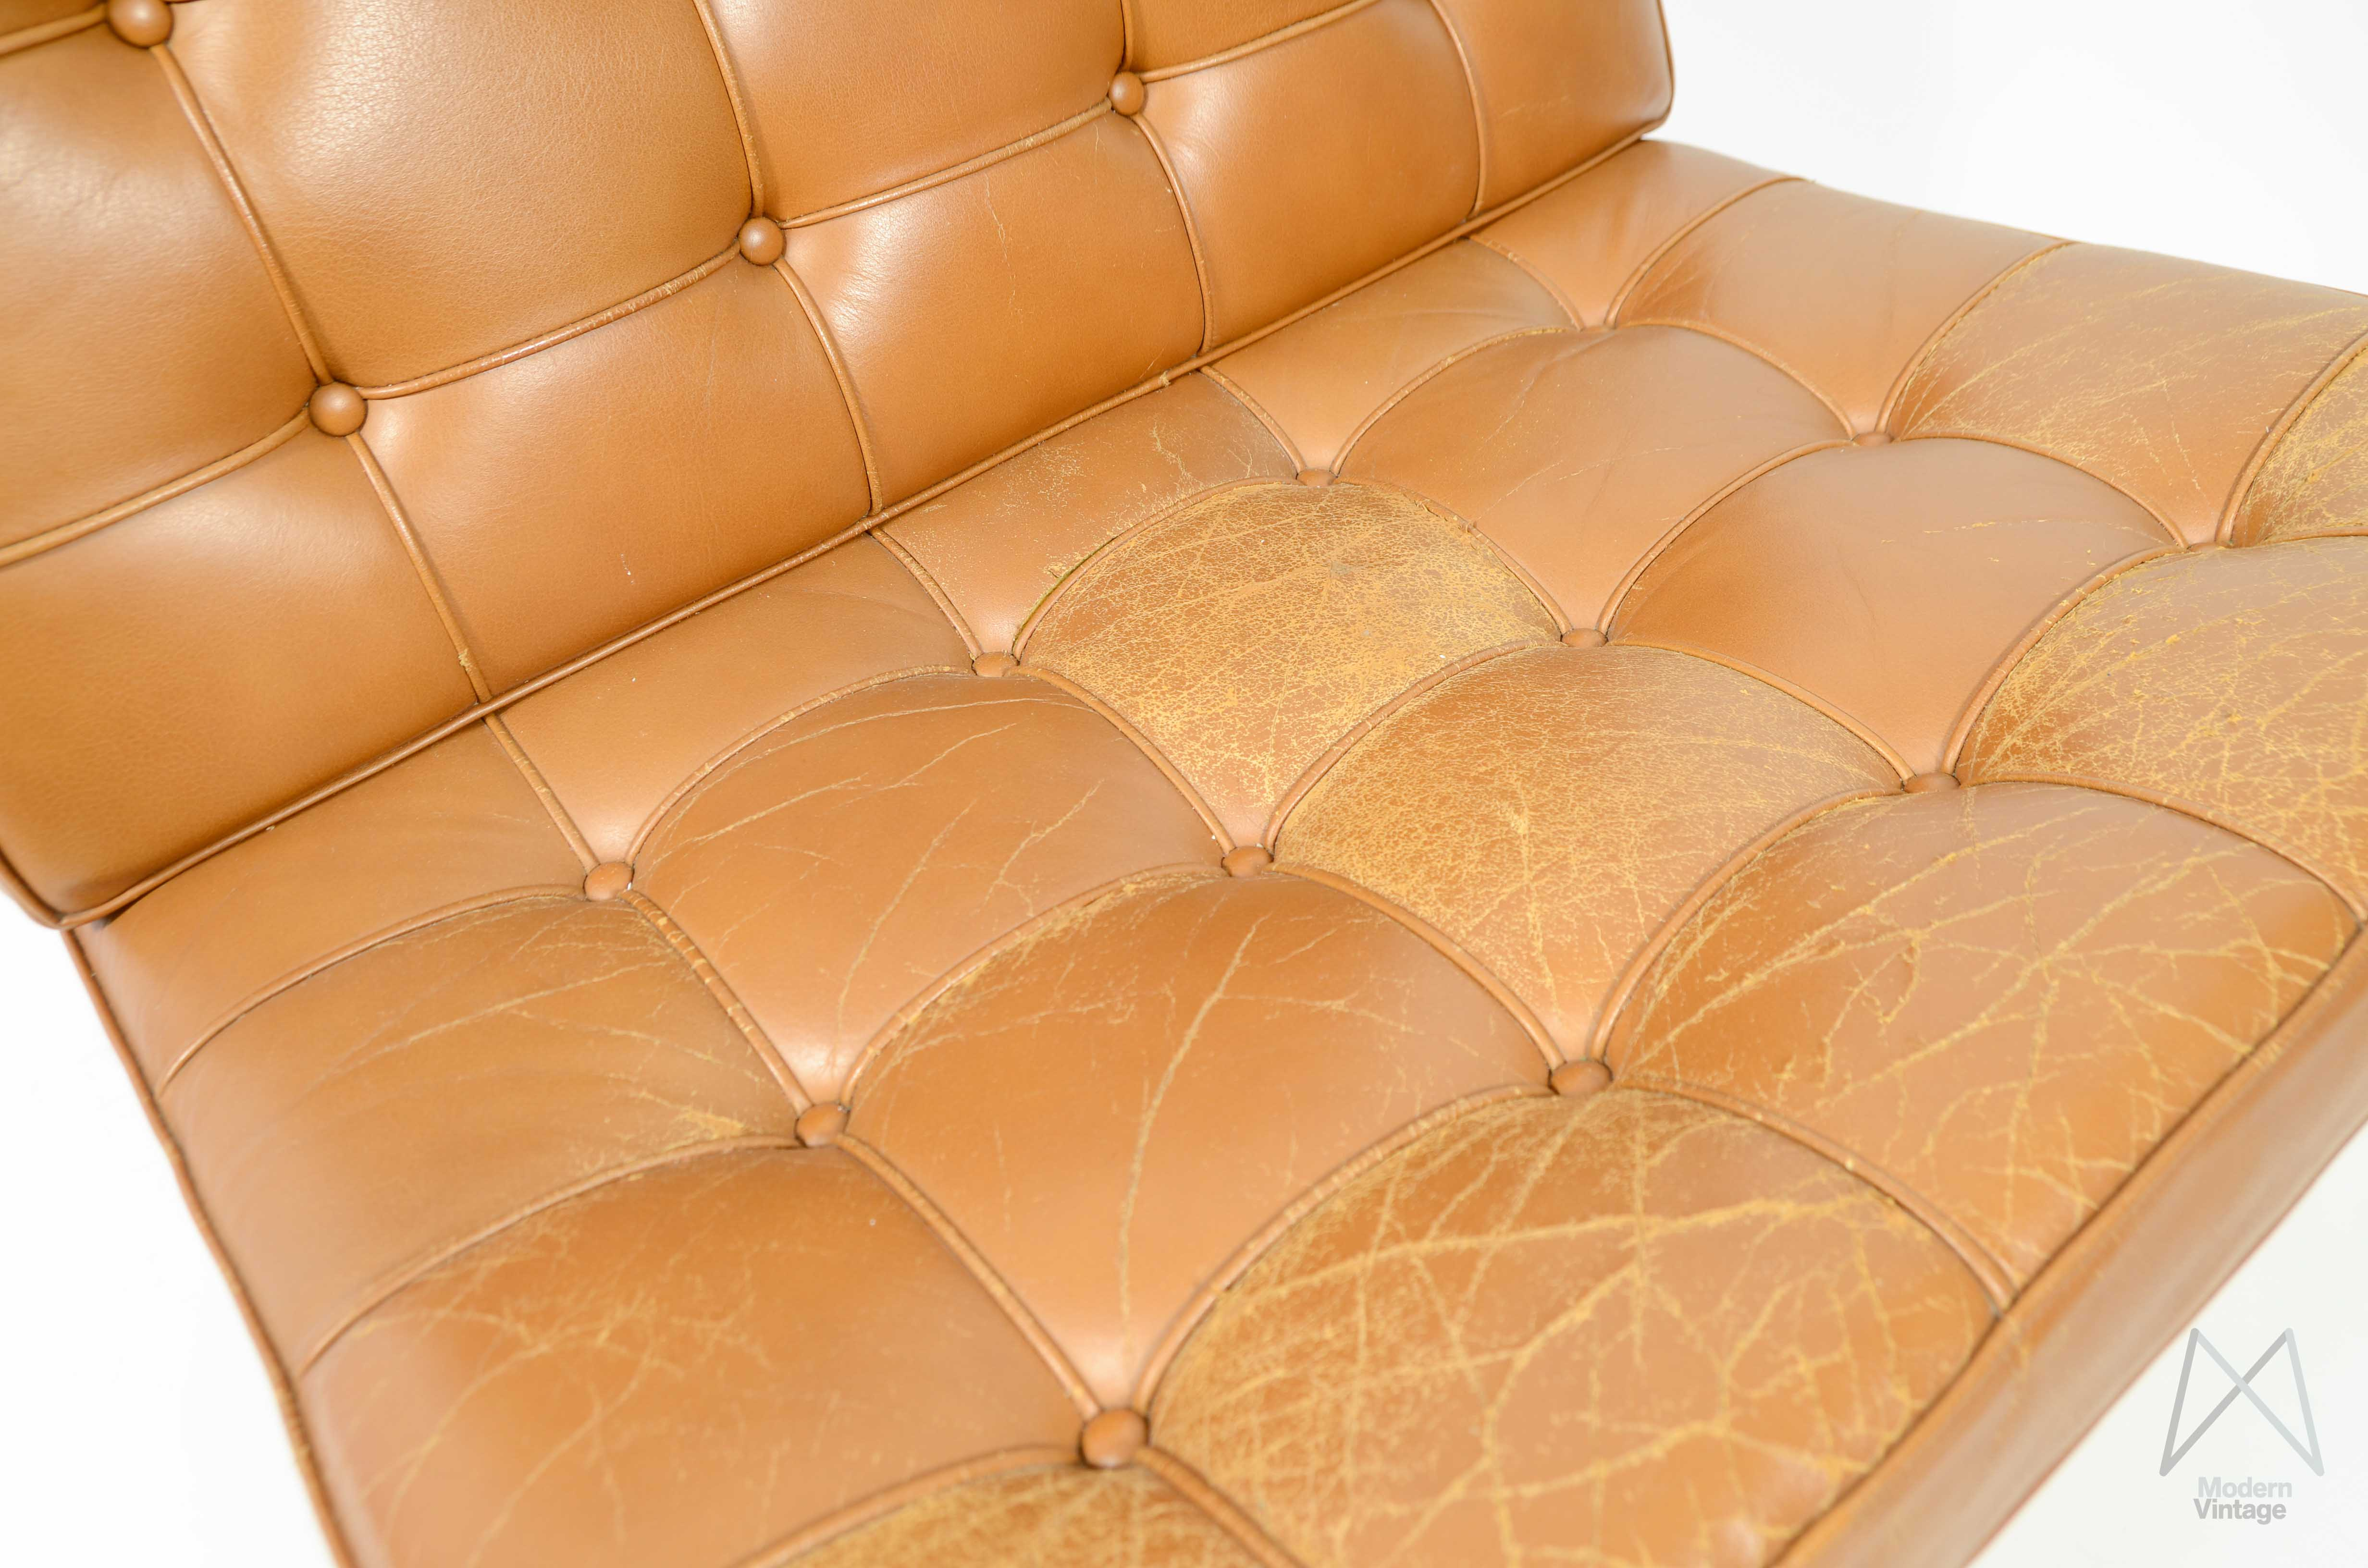 ... Image Of Mies Van Der Rohe Barcelona Chair Cognac Leather Vintage  Original Knoll